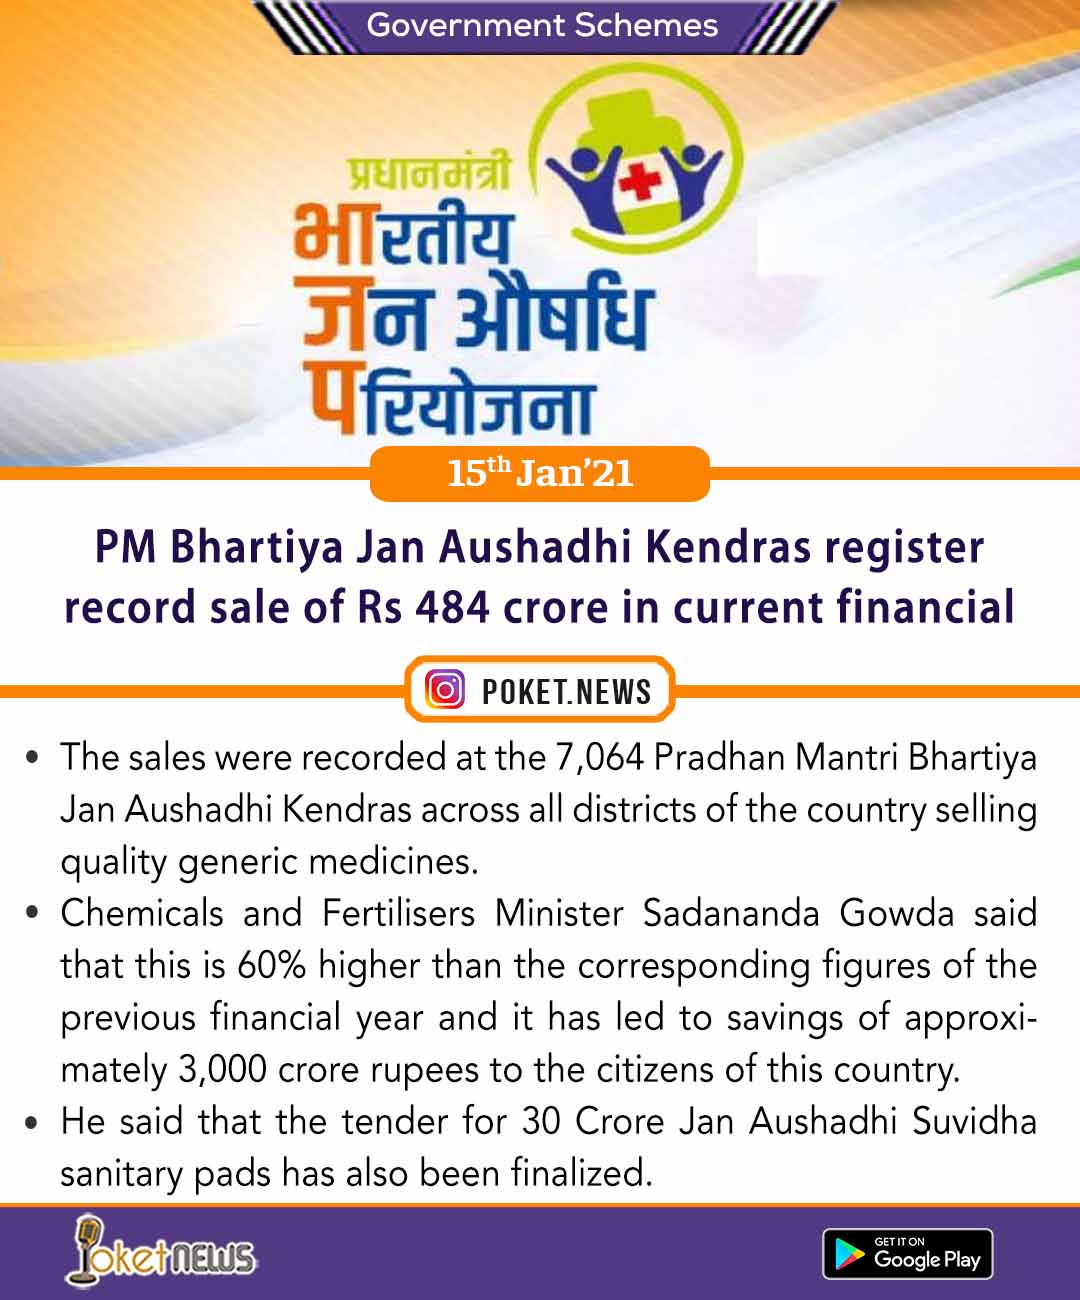 PM Bhartiya Jan Aushadhi Kendras register record sale of Rs 484 crore in current financial year